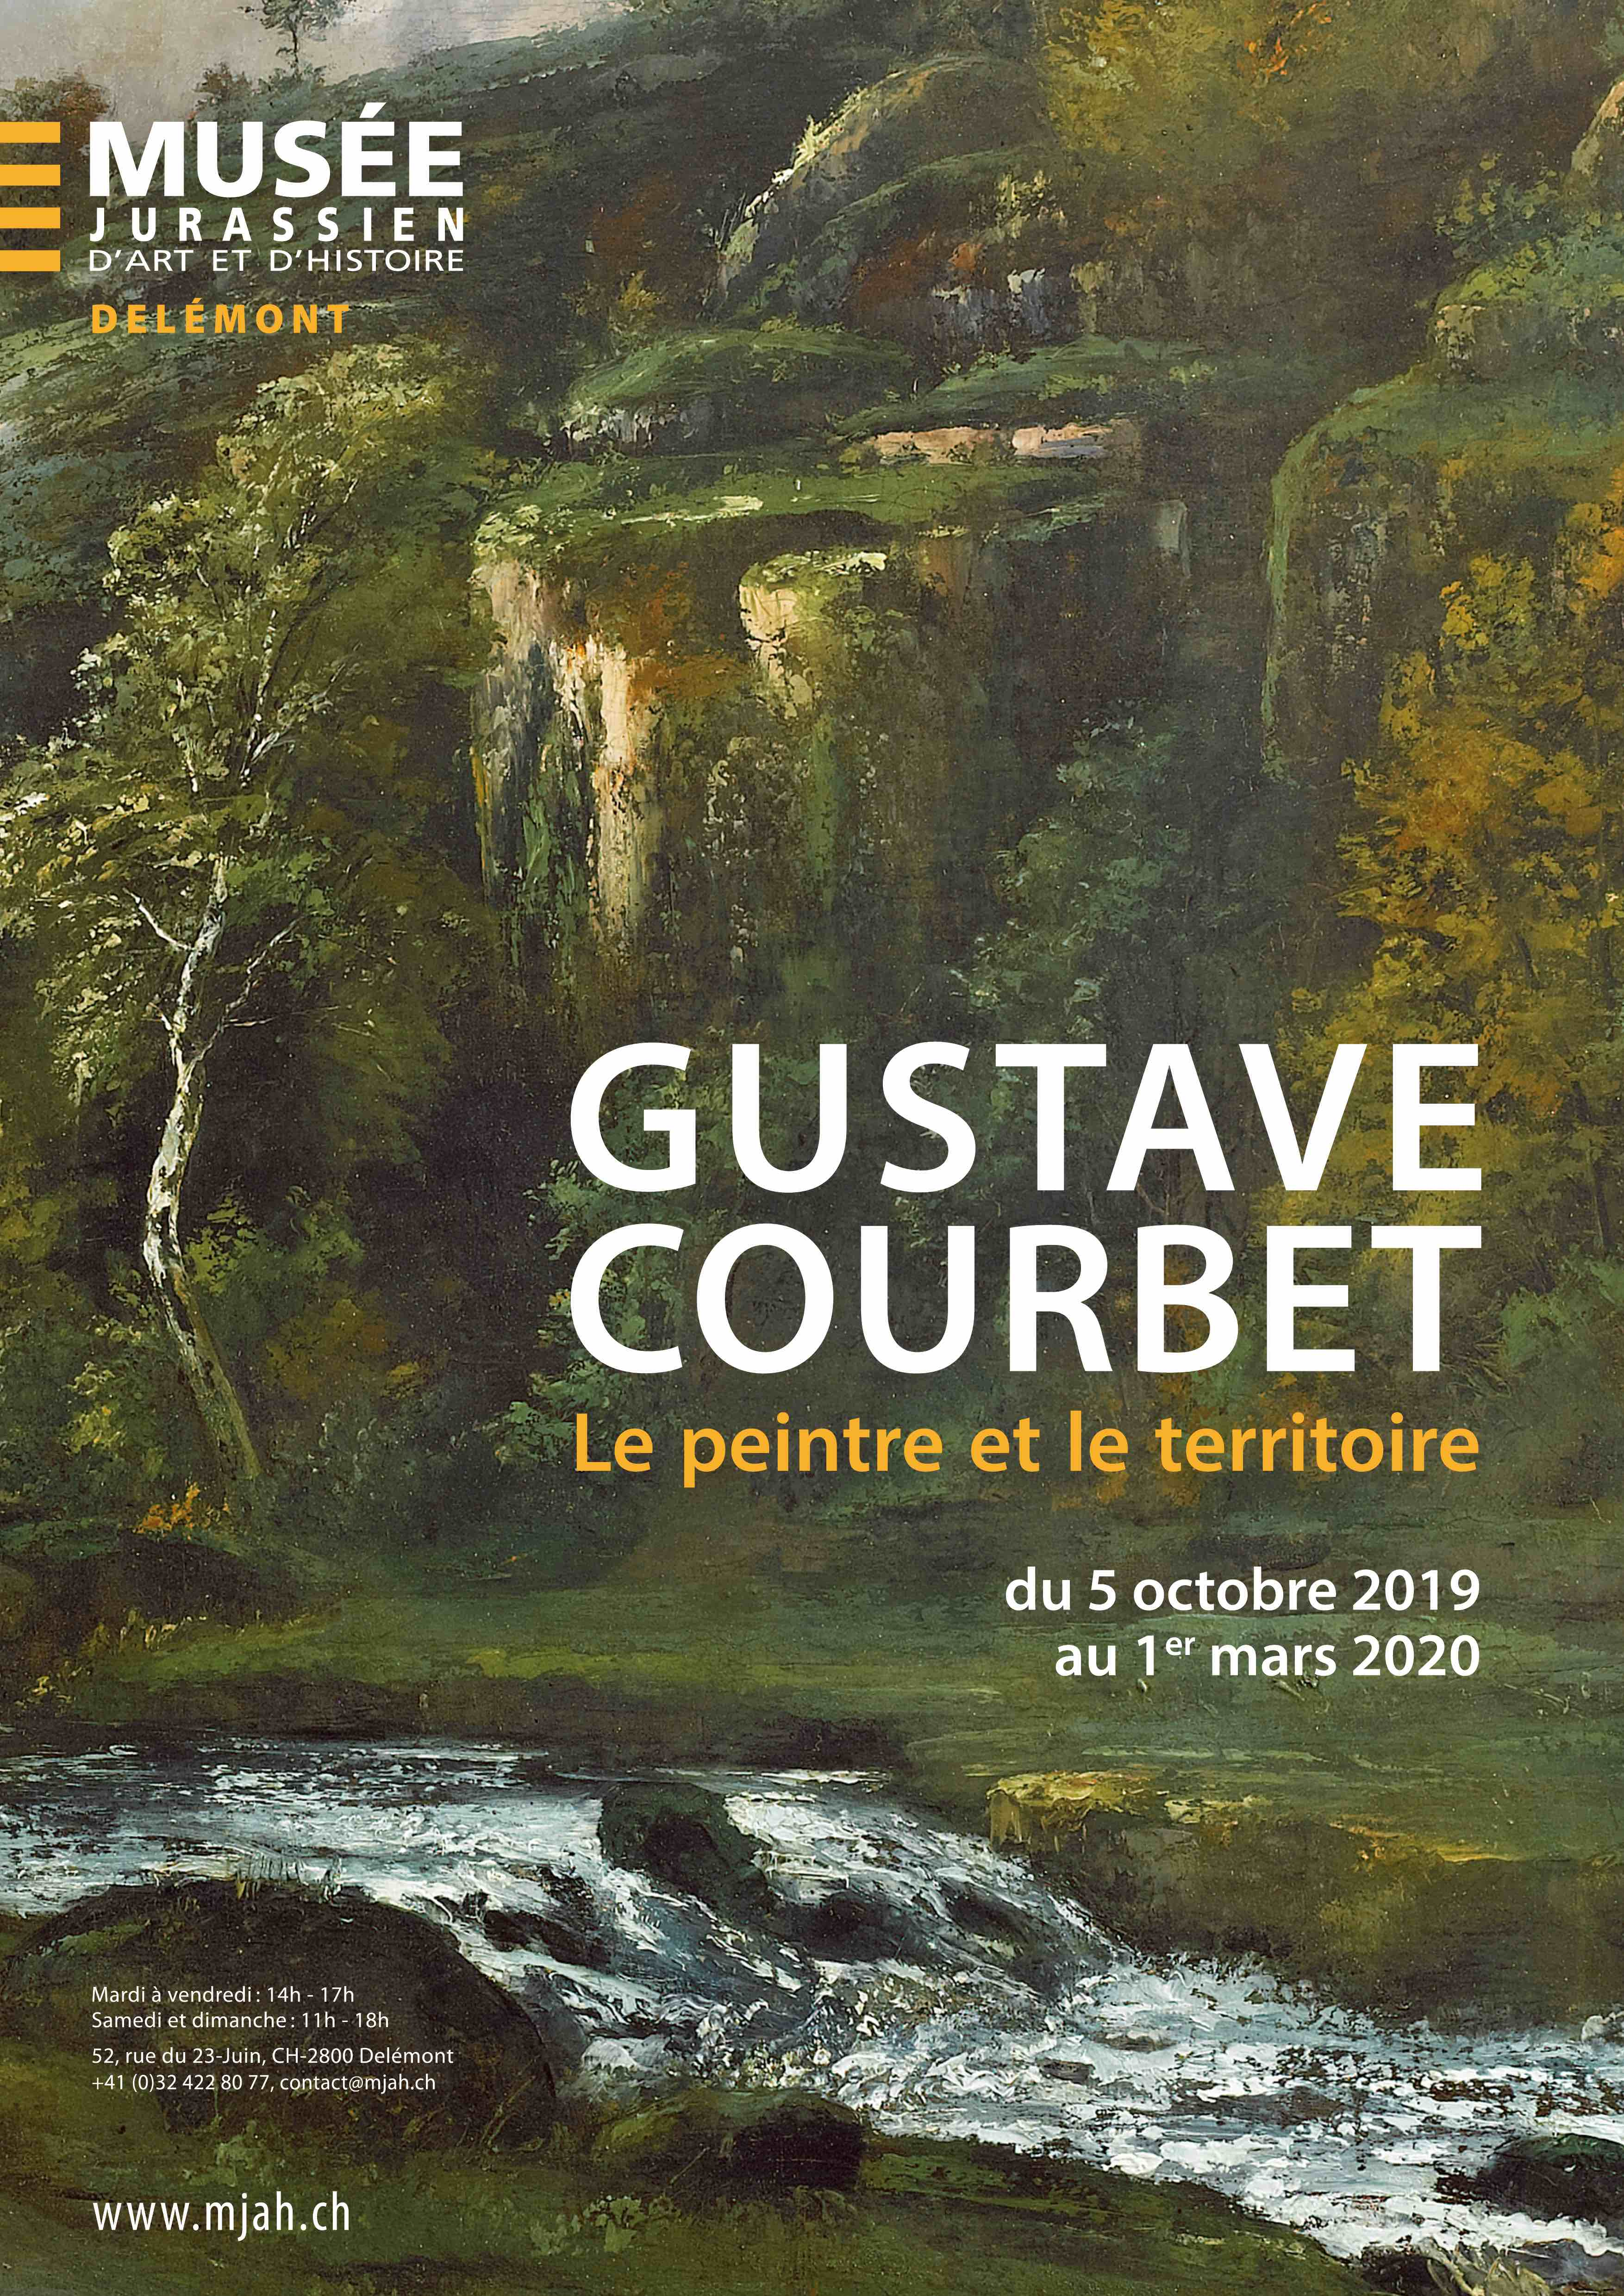 Image for Gustave Courbet